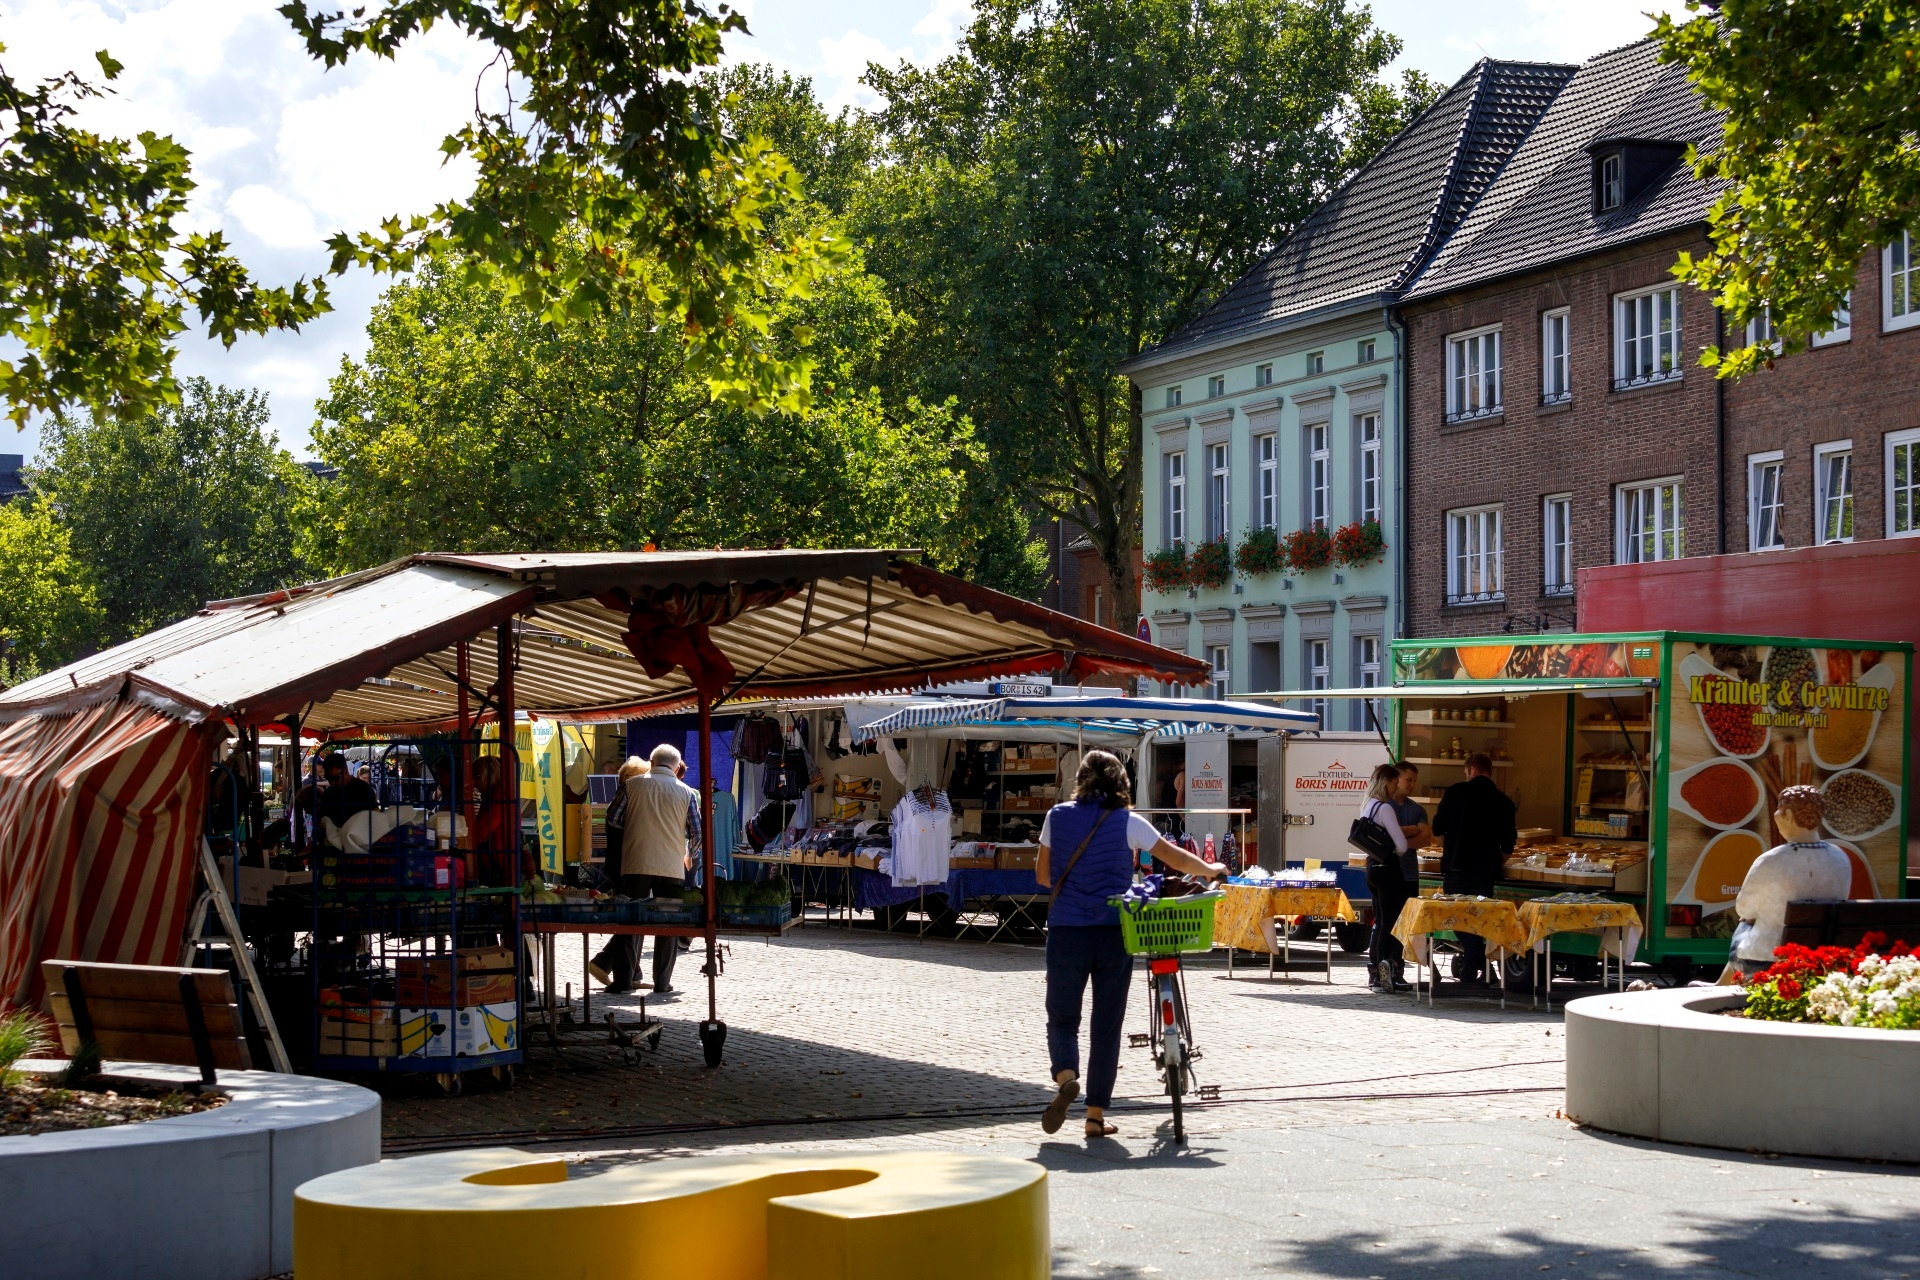 Markttag in Rees